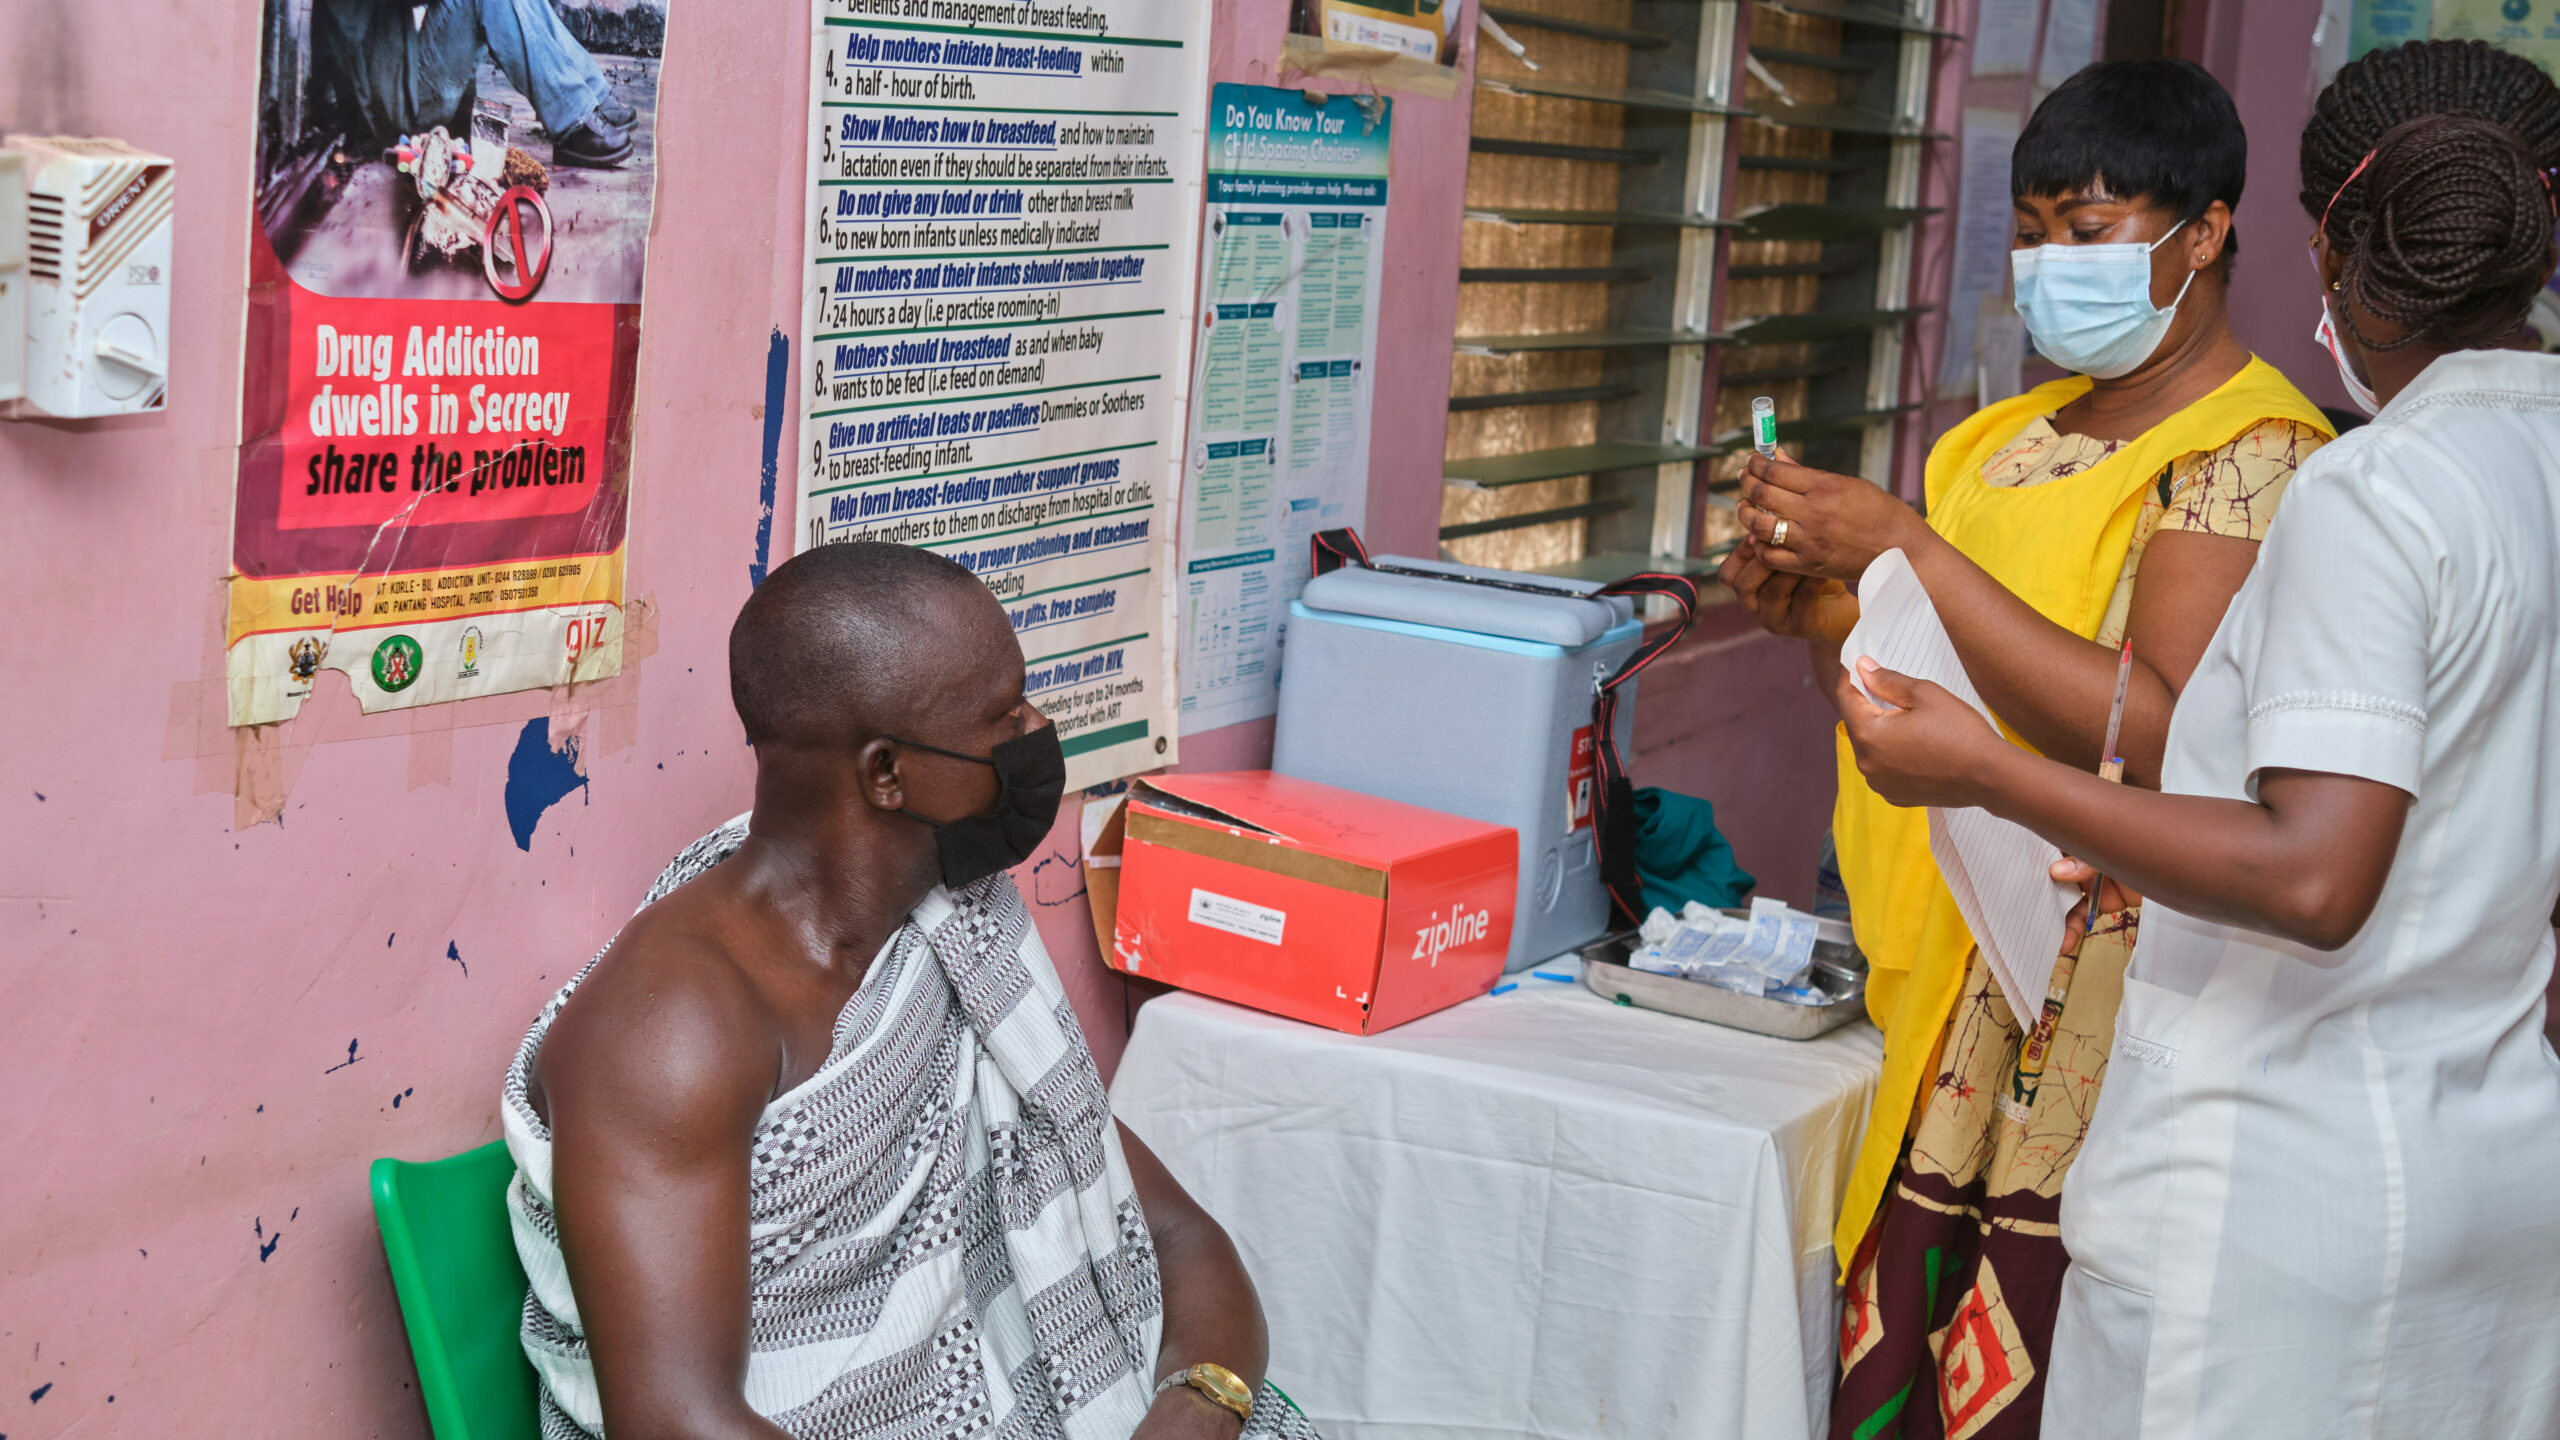 Covid-19 vaccines arrive in Africa